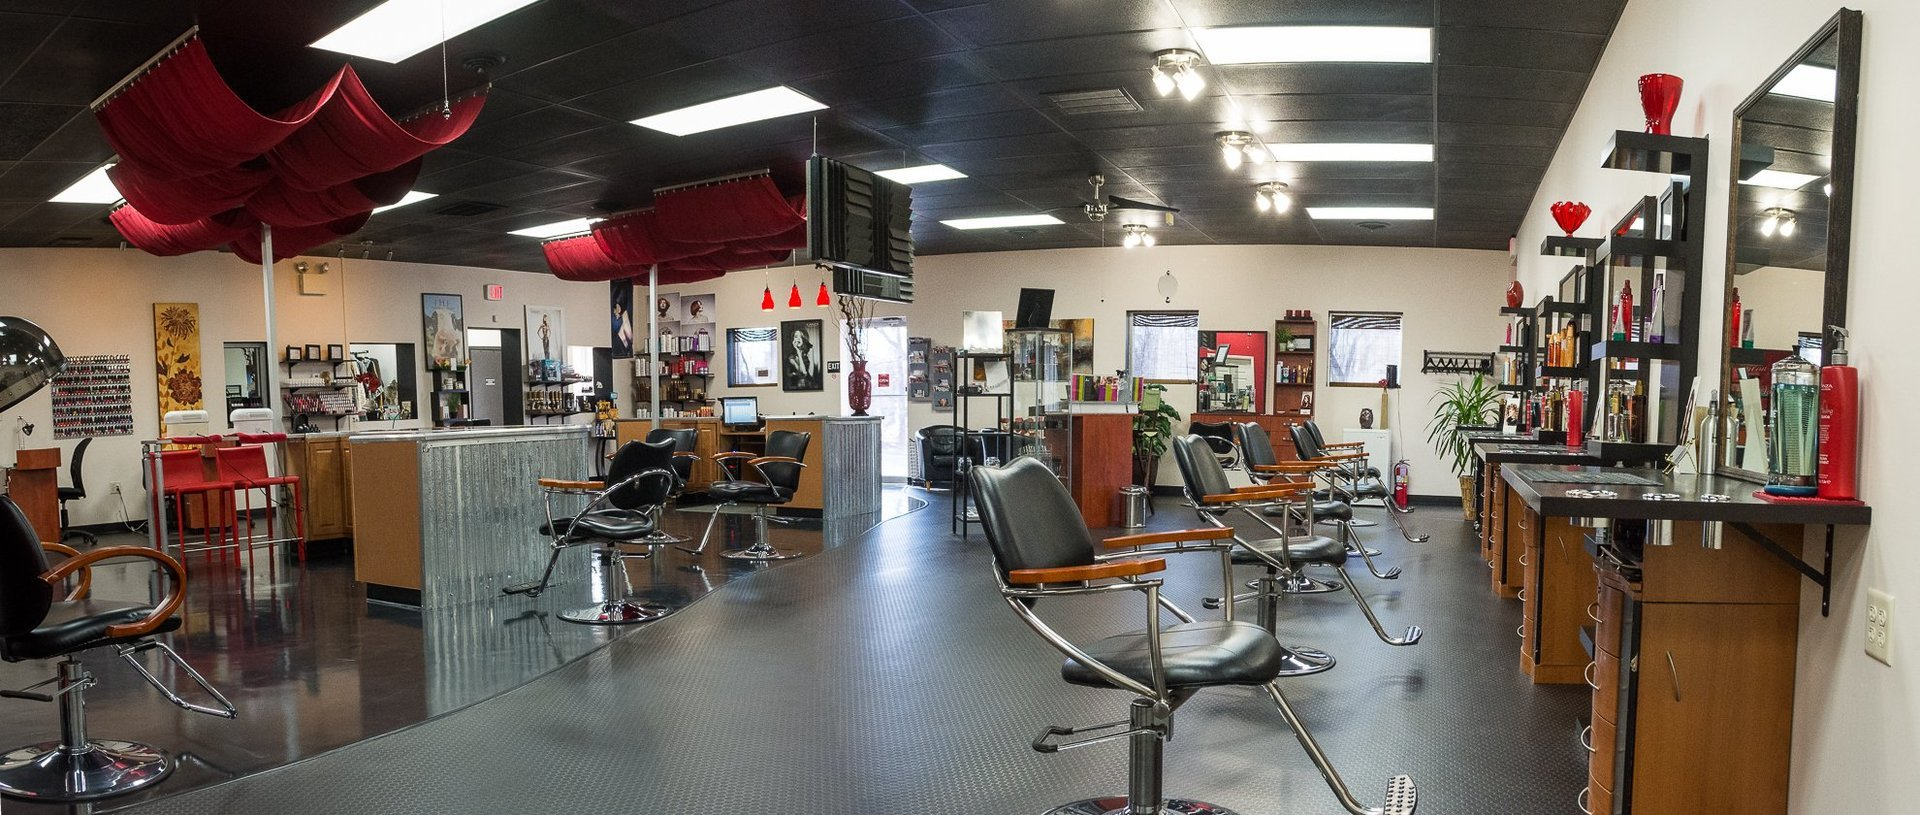 Interior of Salon Noelle